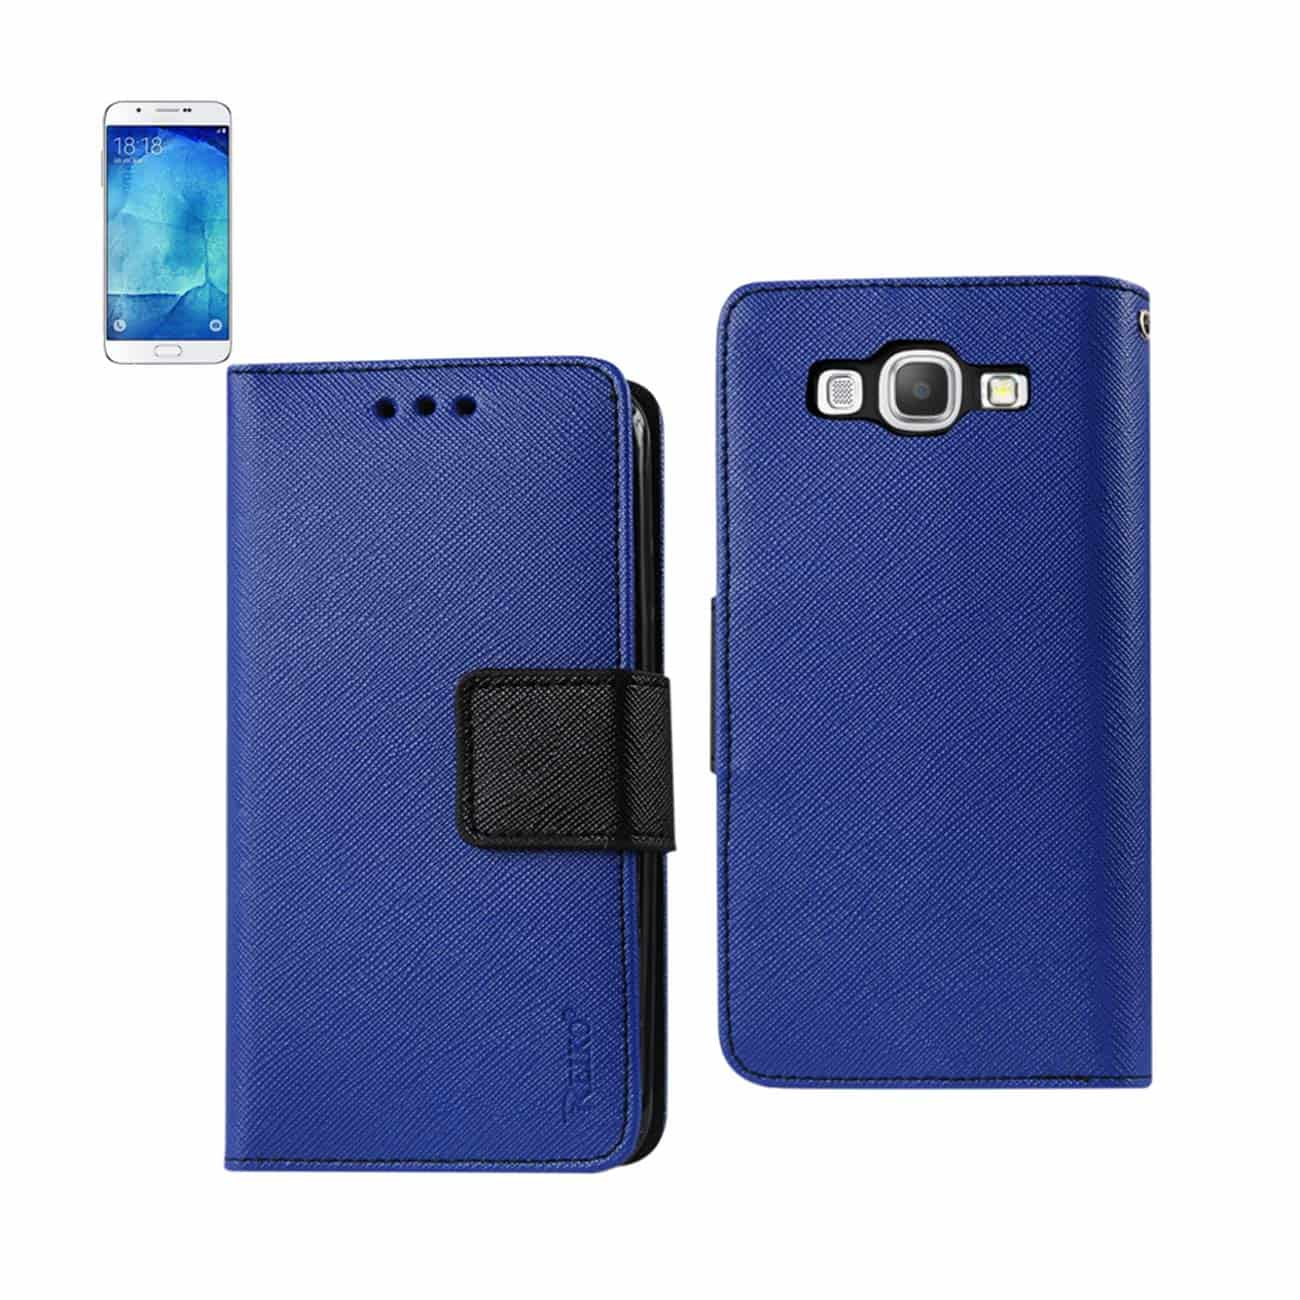 SAMSUNG GALAXY A8 3-IN-1 WALLET CASE IN NAVY